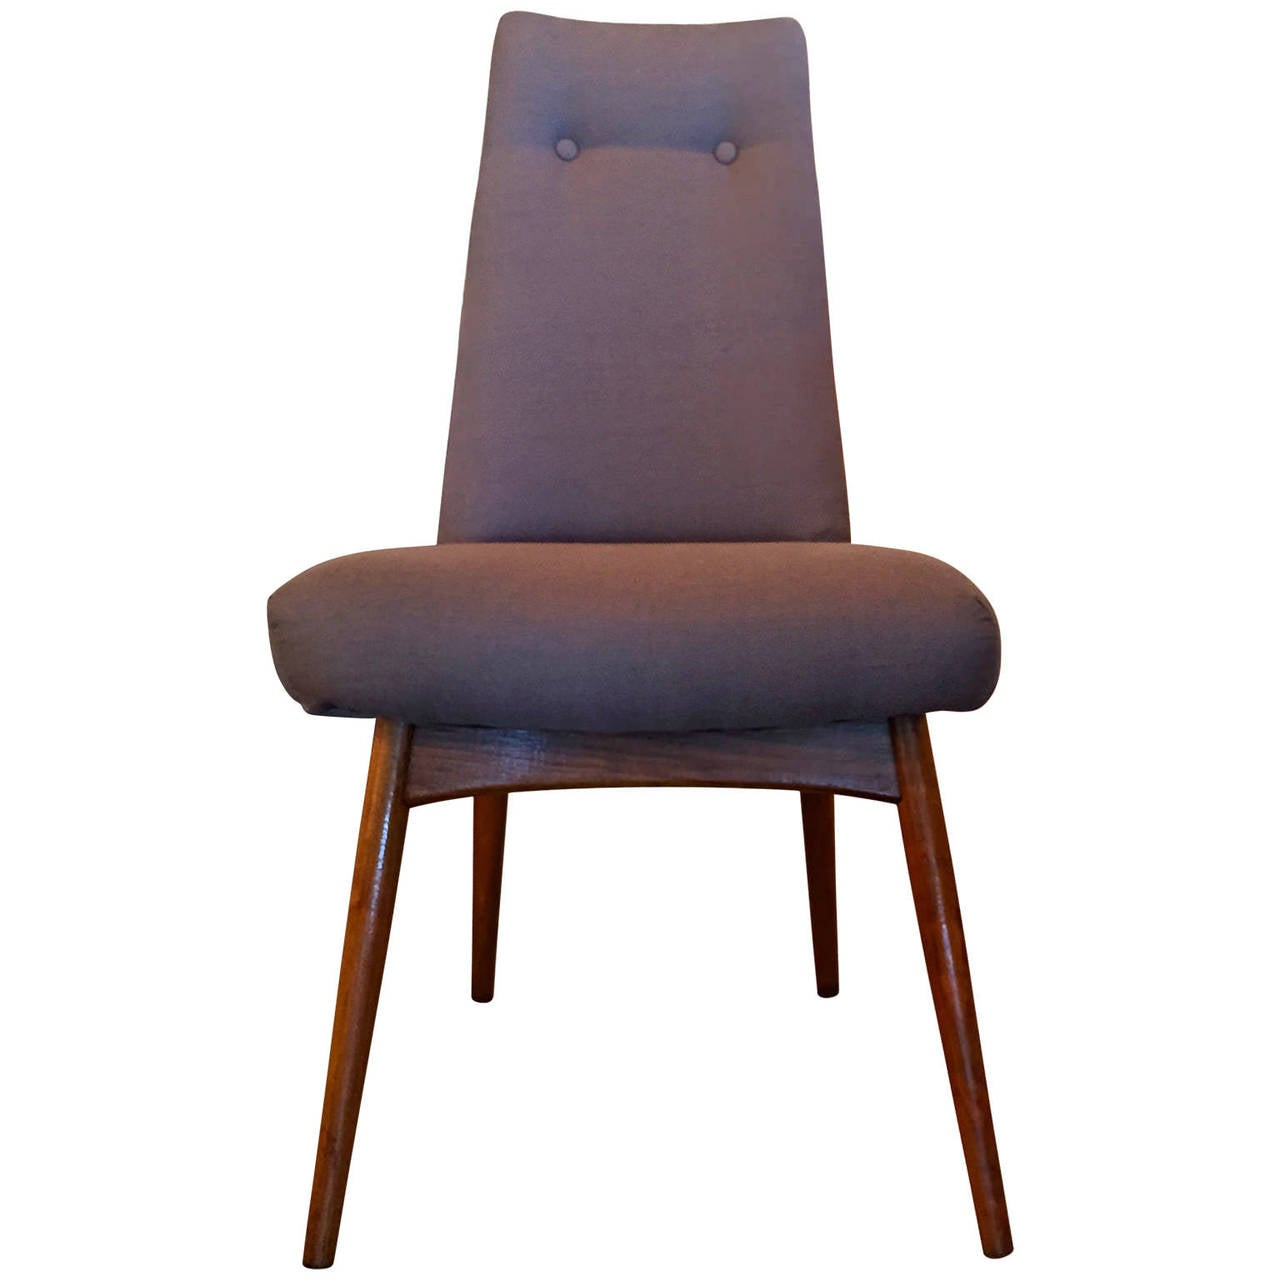 adrian pearsall chair cover hire blackpool mid century modern s 6 rosewood and linen